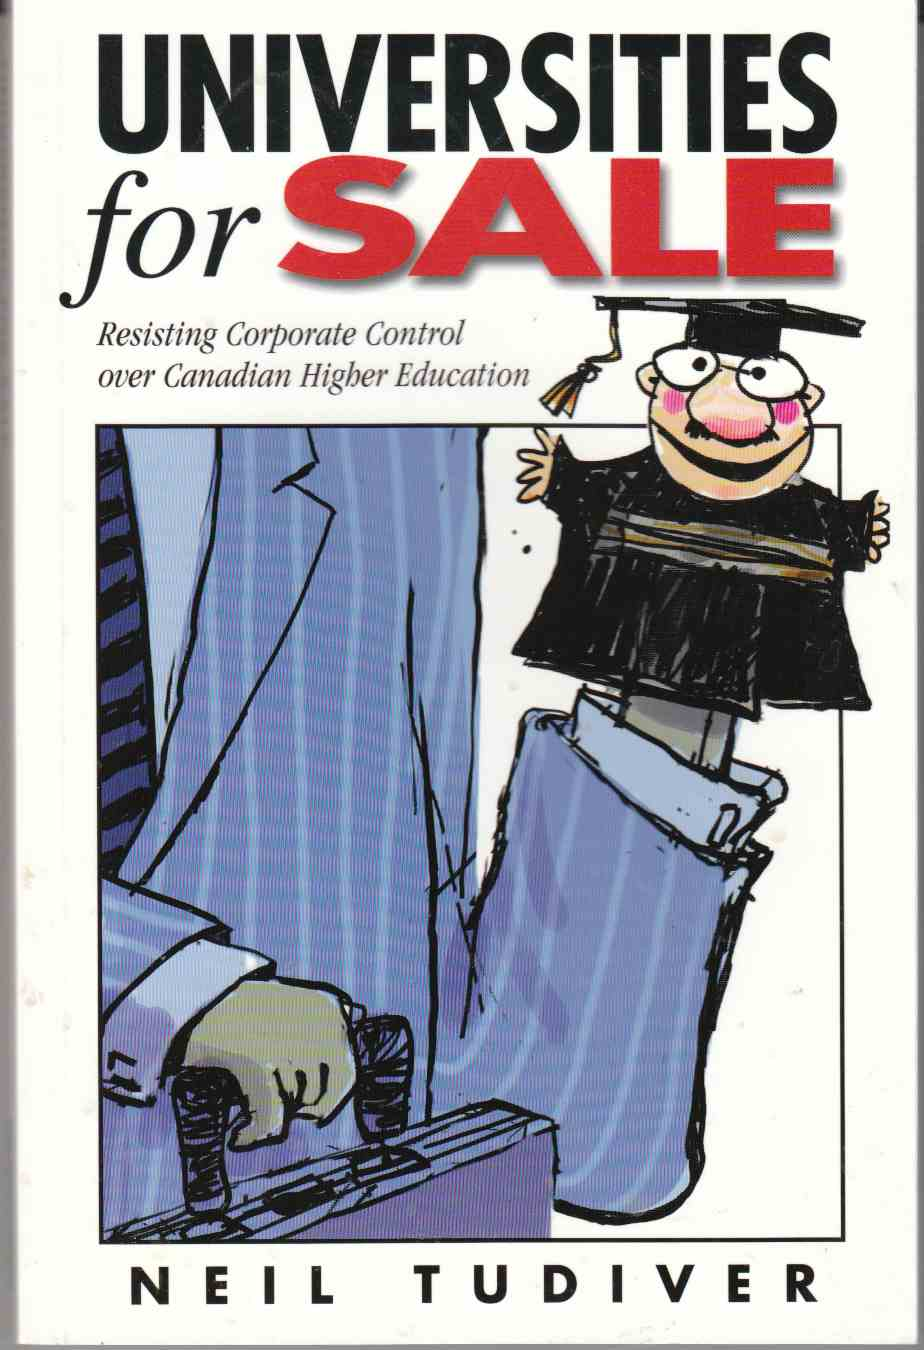 Image for Universities for Sale Resisting Corporate Control over Higher Education